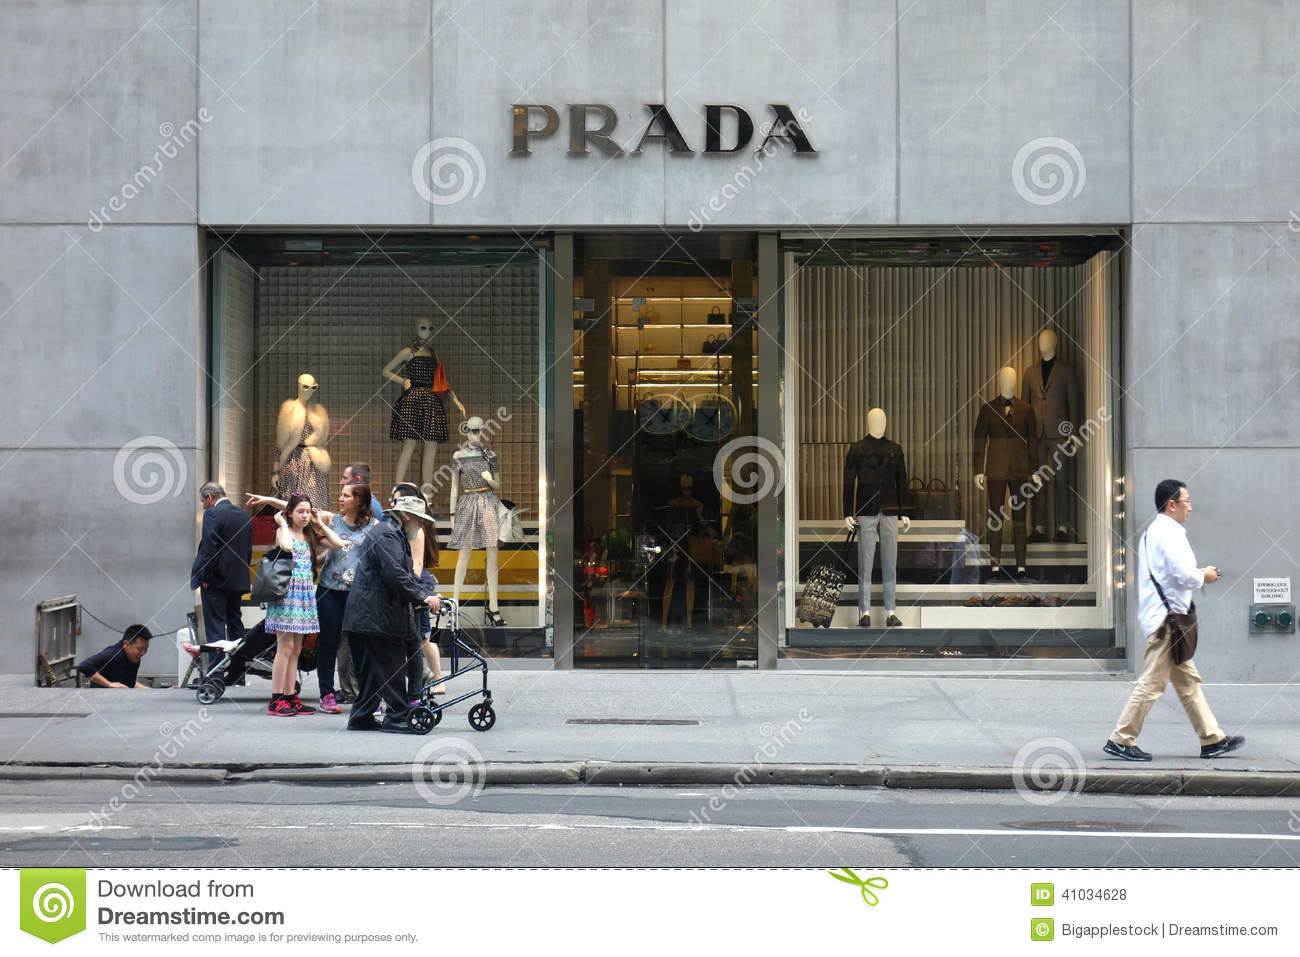 5th avenue clothing stores. Clothing stores